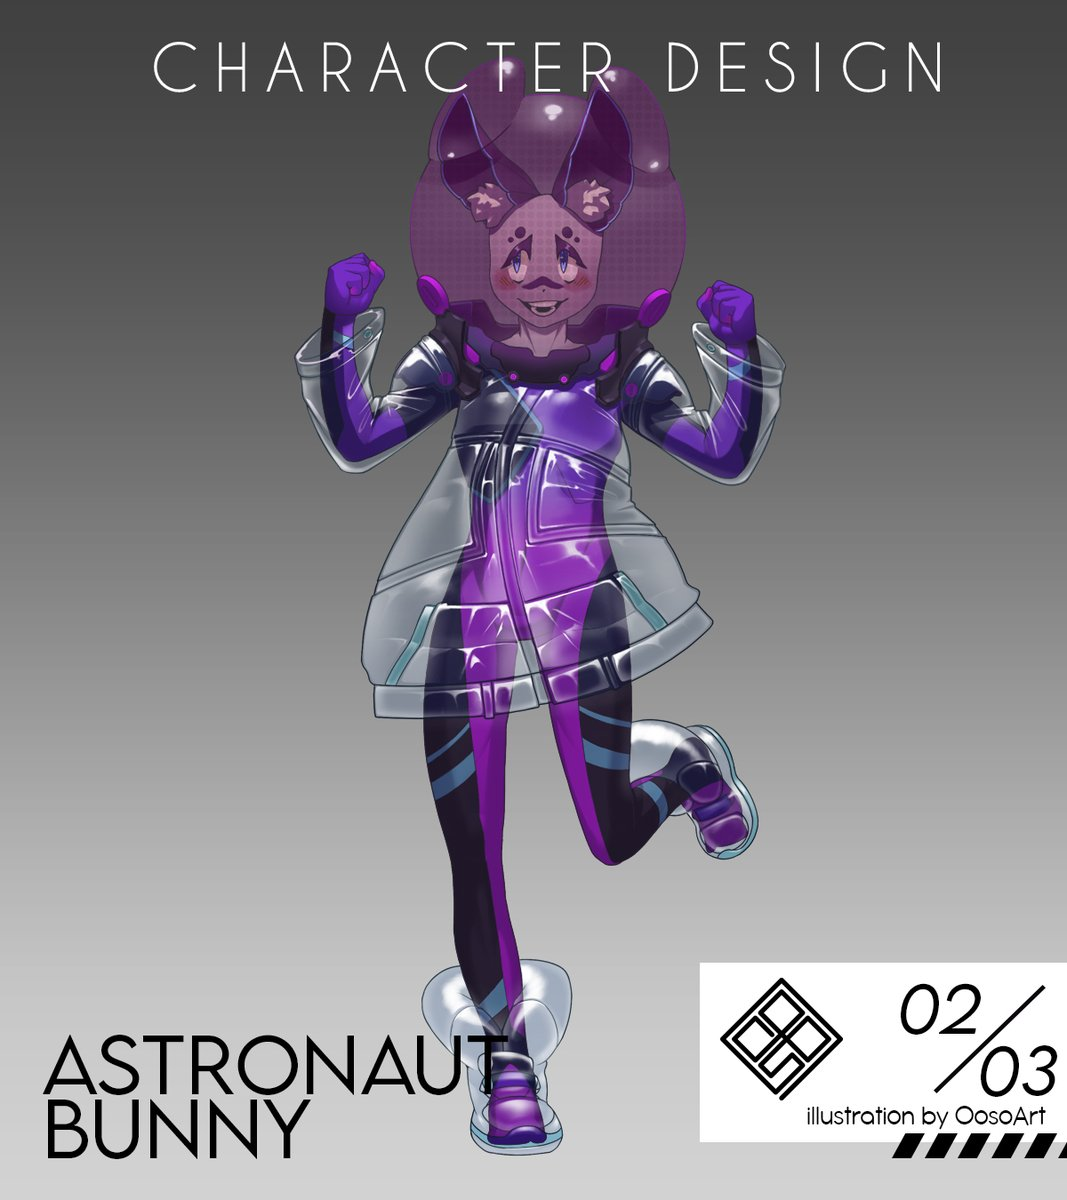 second #characterdesign !  astronaut bunny !   pic.twitter.com/vSyVH8qRBx